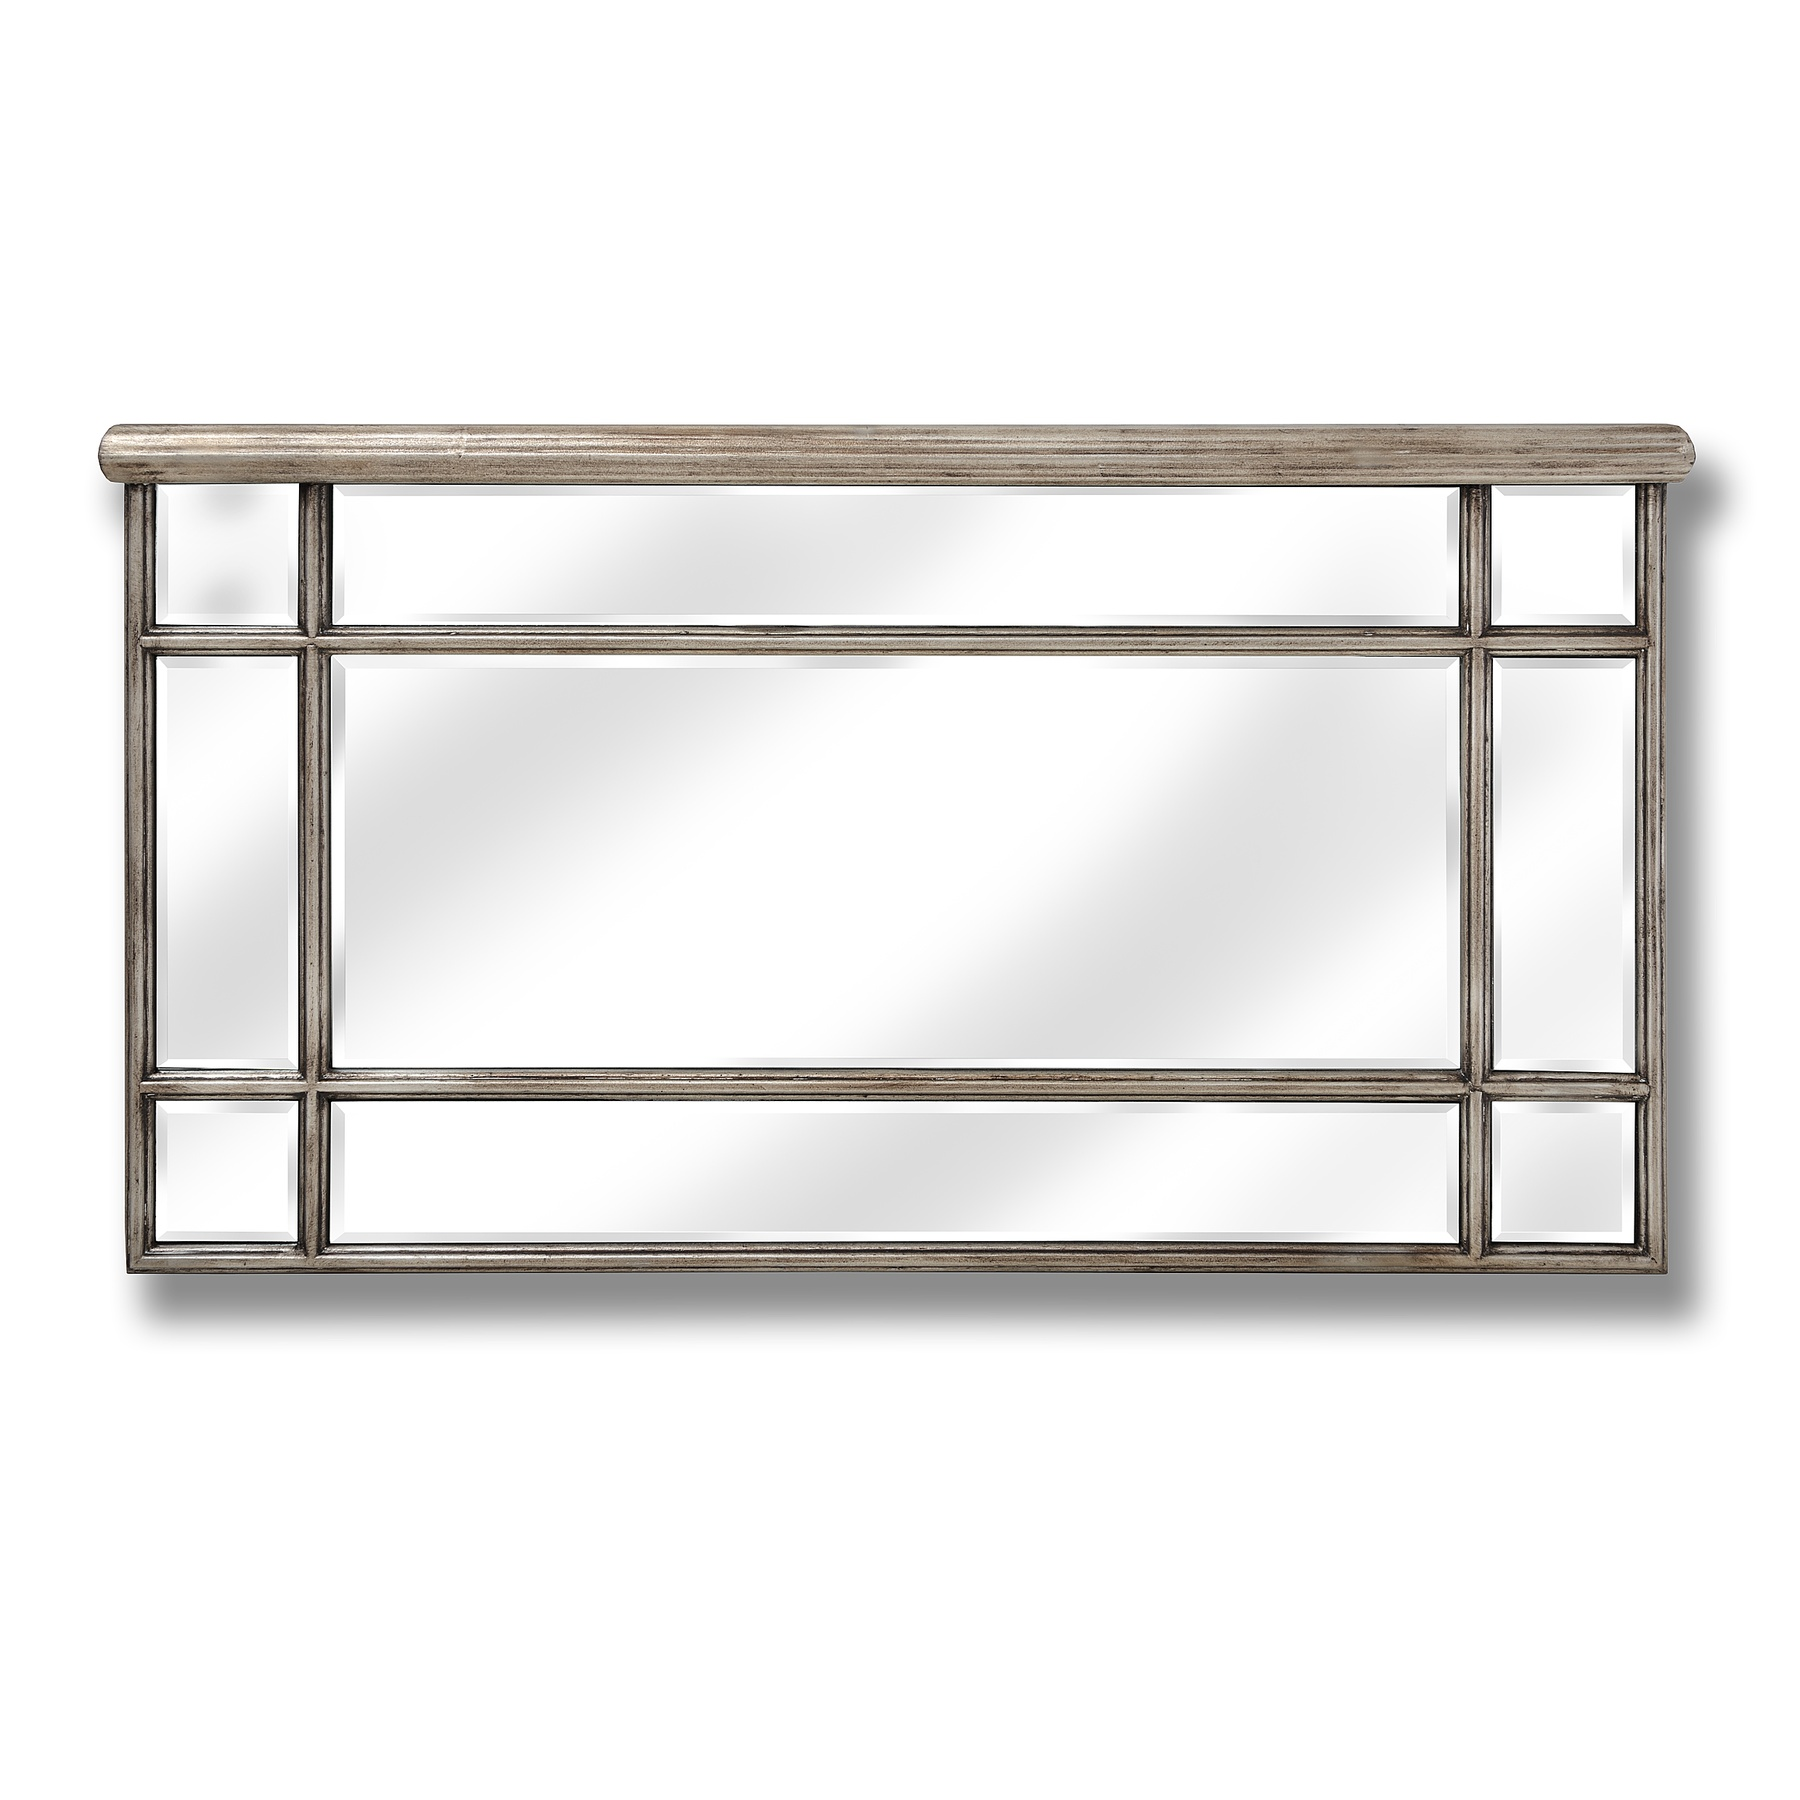 The Belfry Collection Over Mantel Mirror